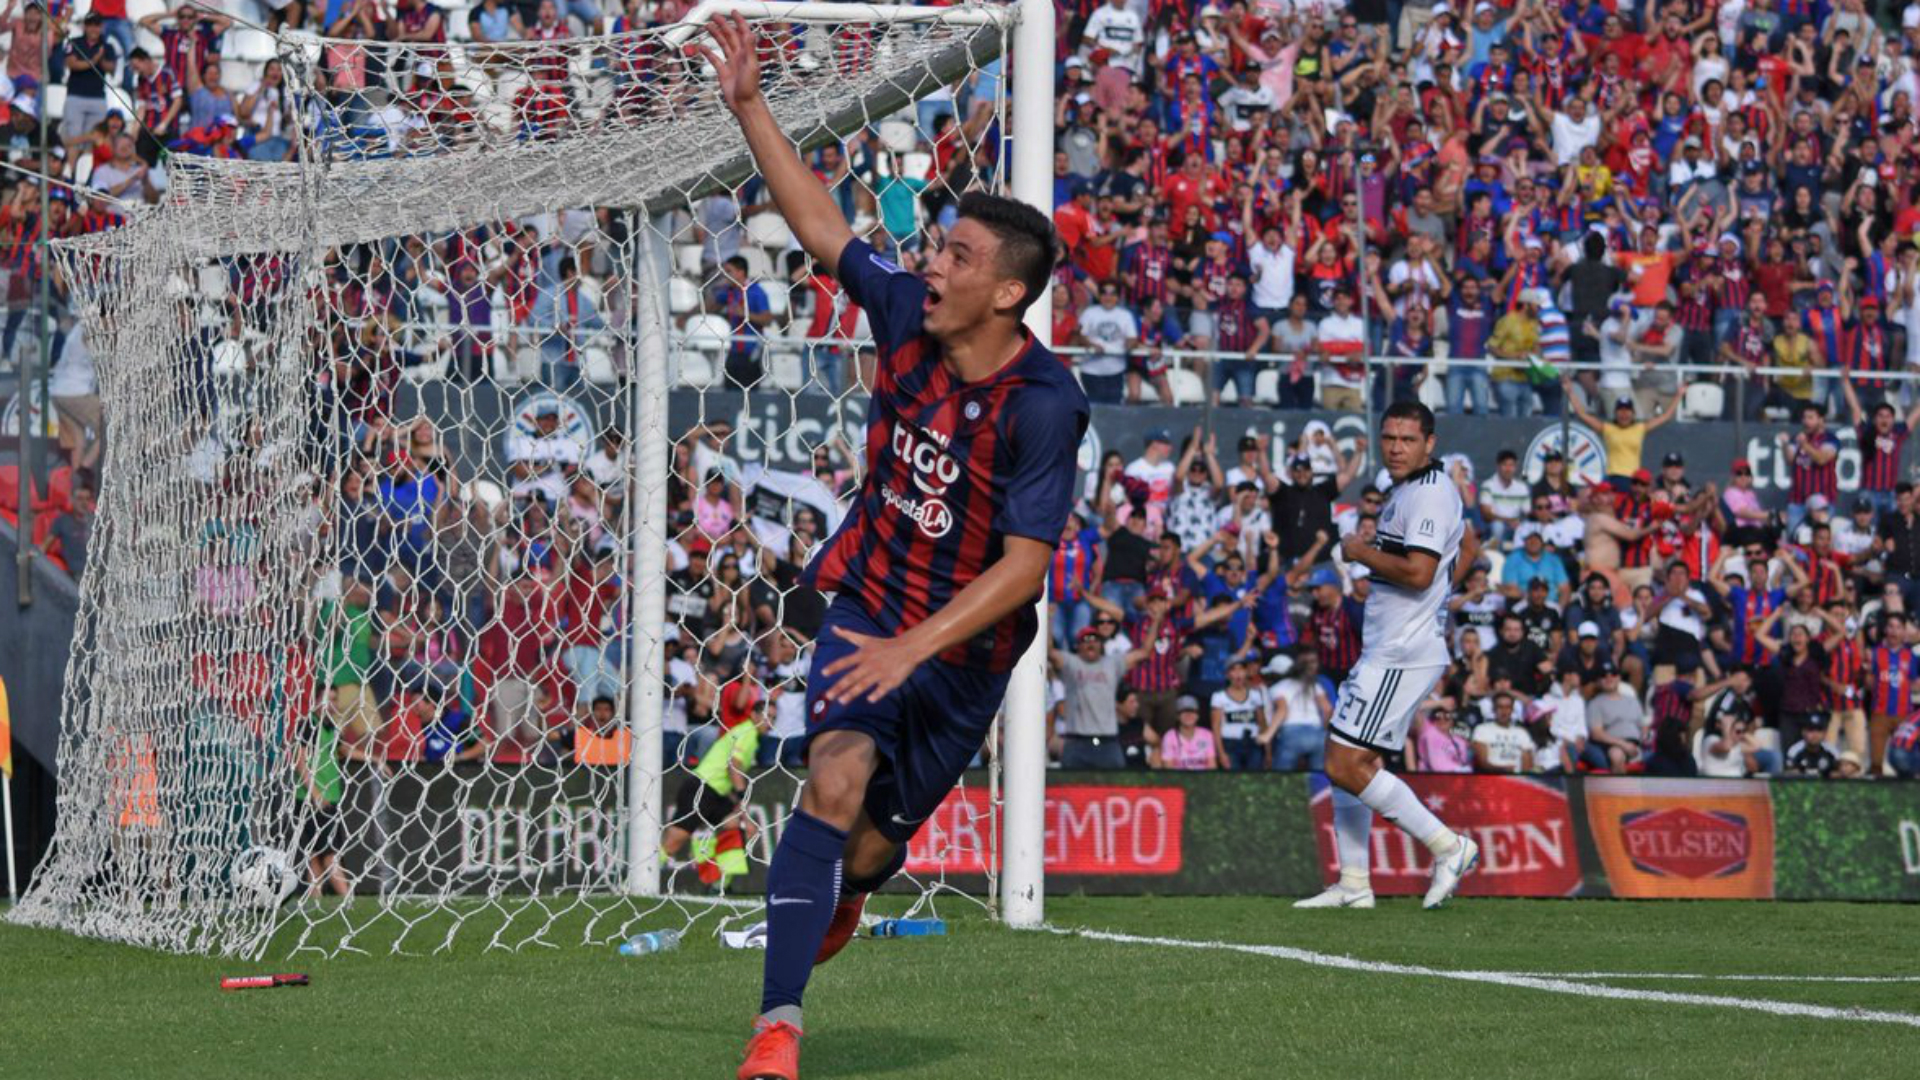 Cerro Portenos 14-year-old striker Ovelar skor derby